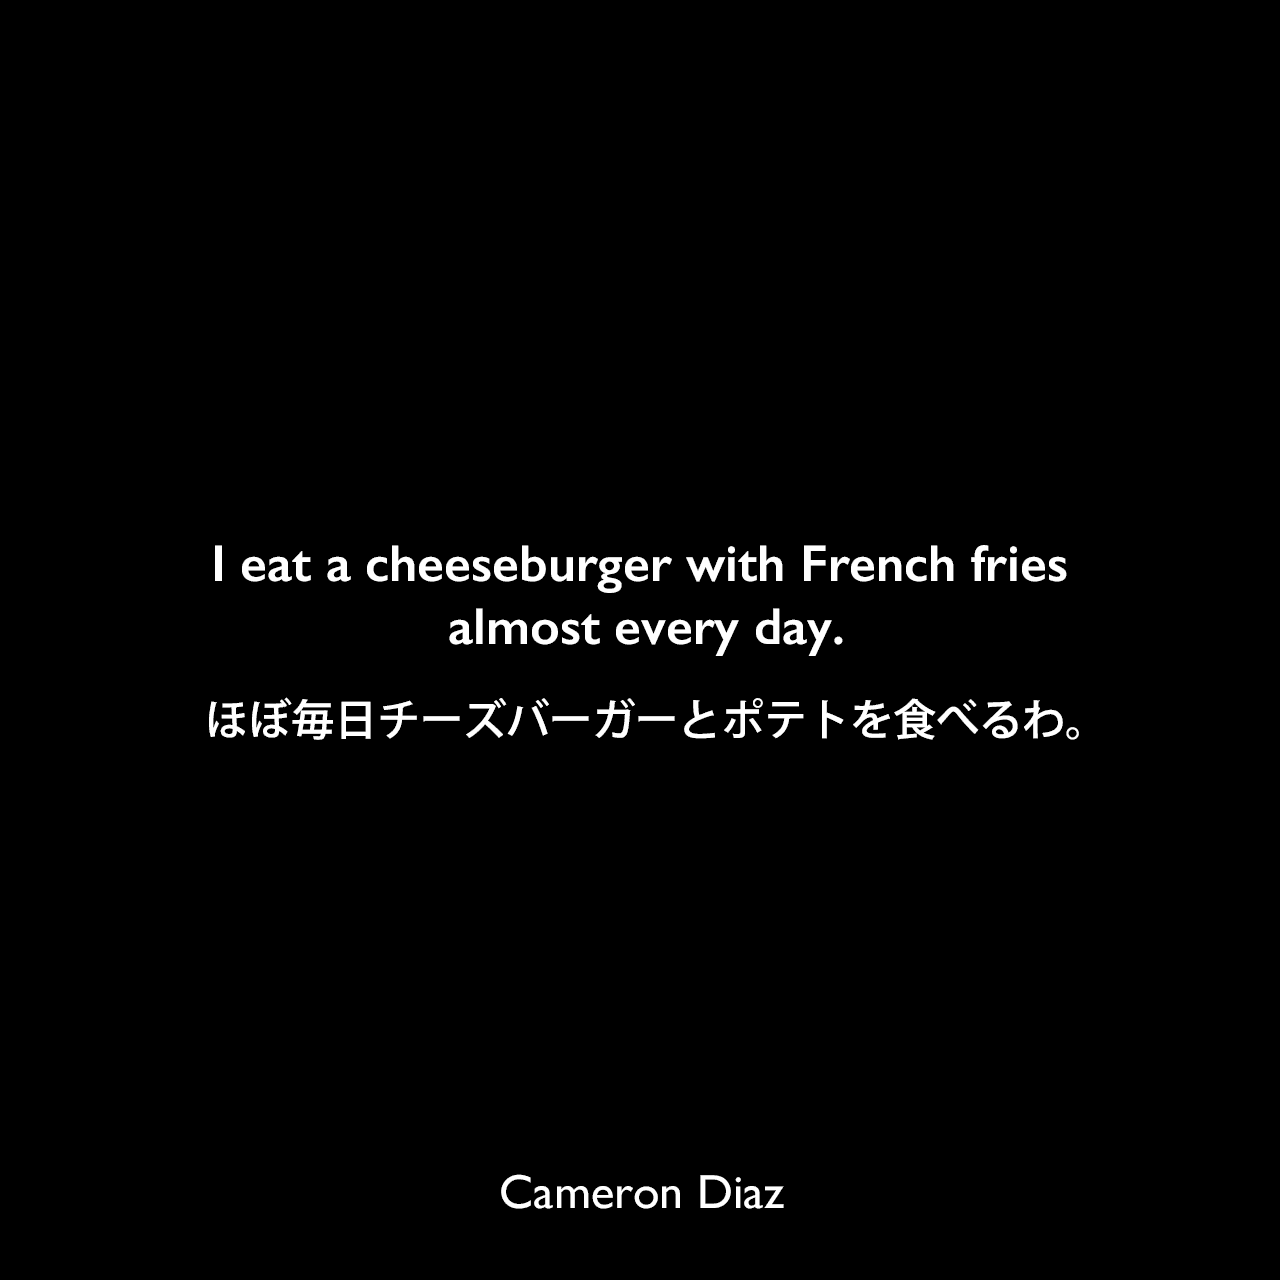 I eat a cheeseburger with French fries almost every day.ほぼ毎日チーズバーガーとポテトを食べるわ。Cameron Diaz